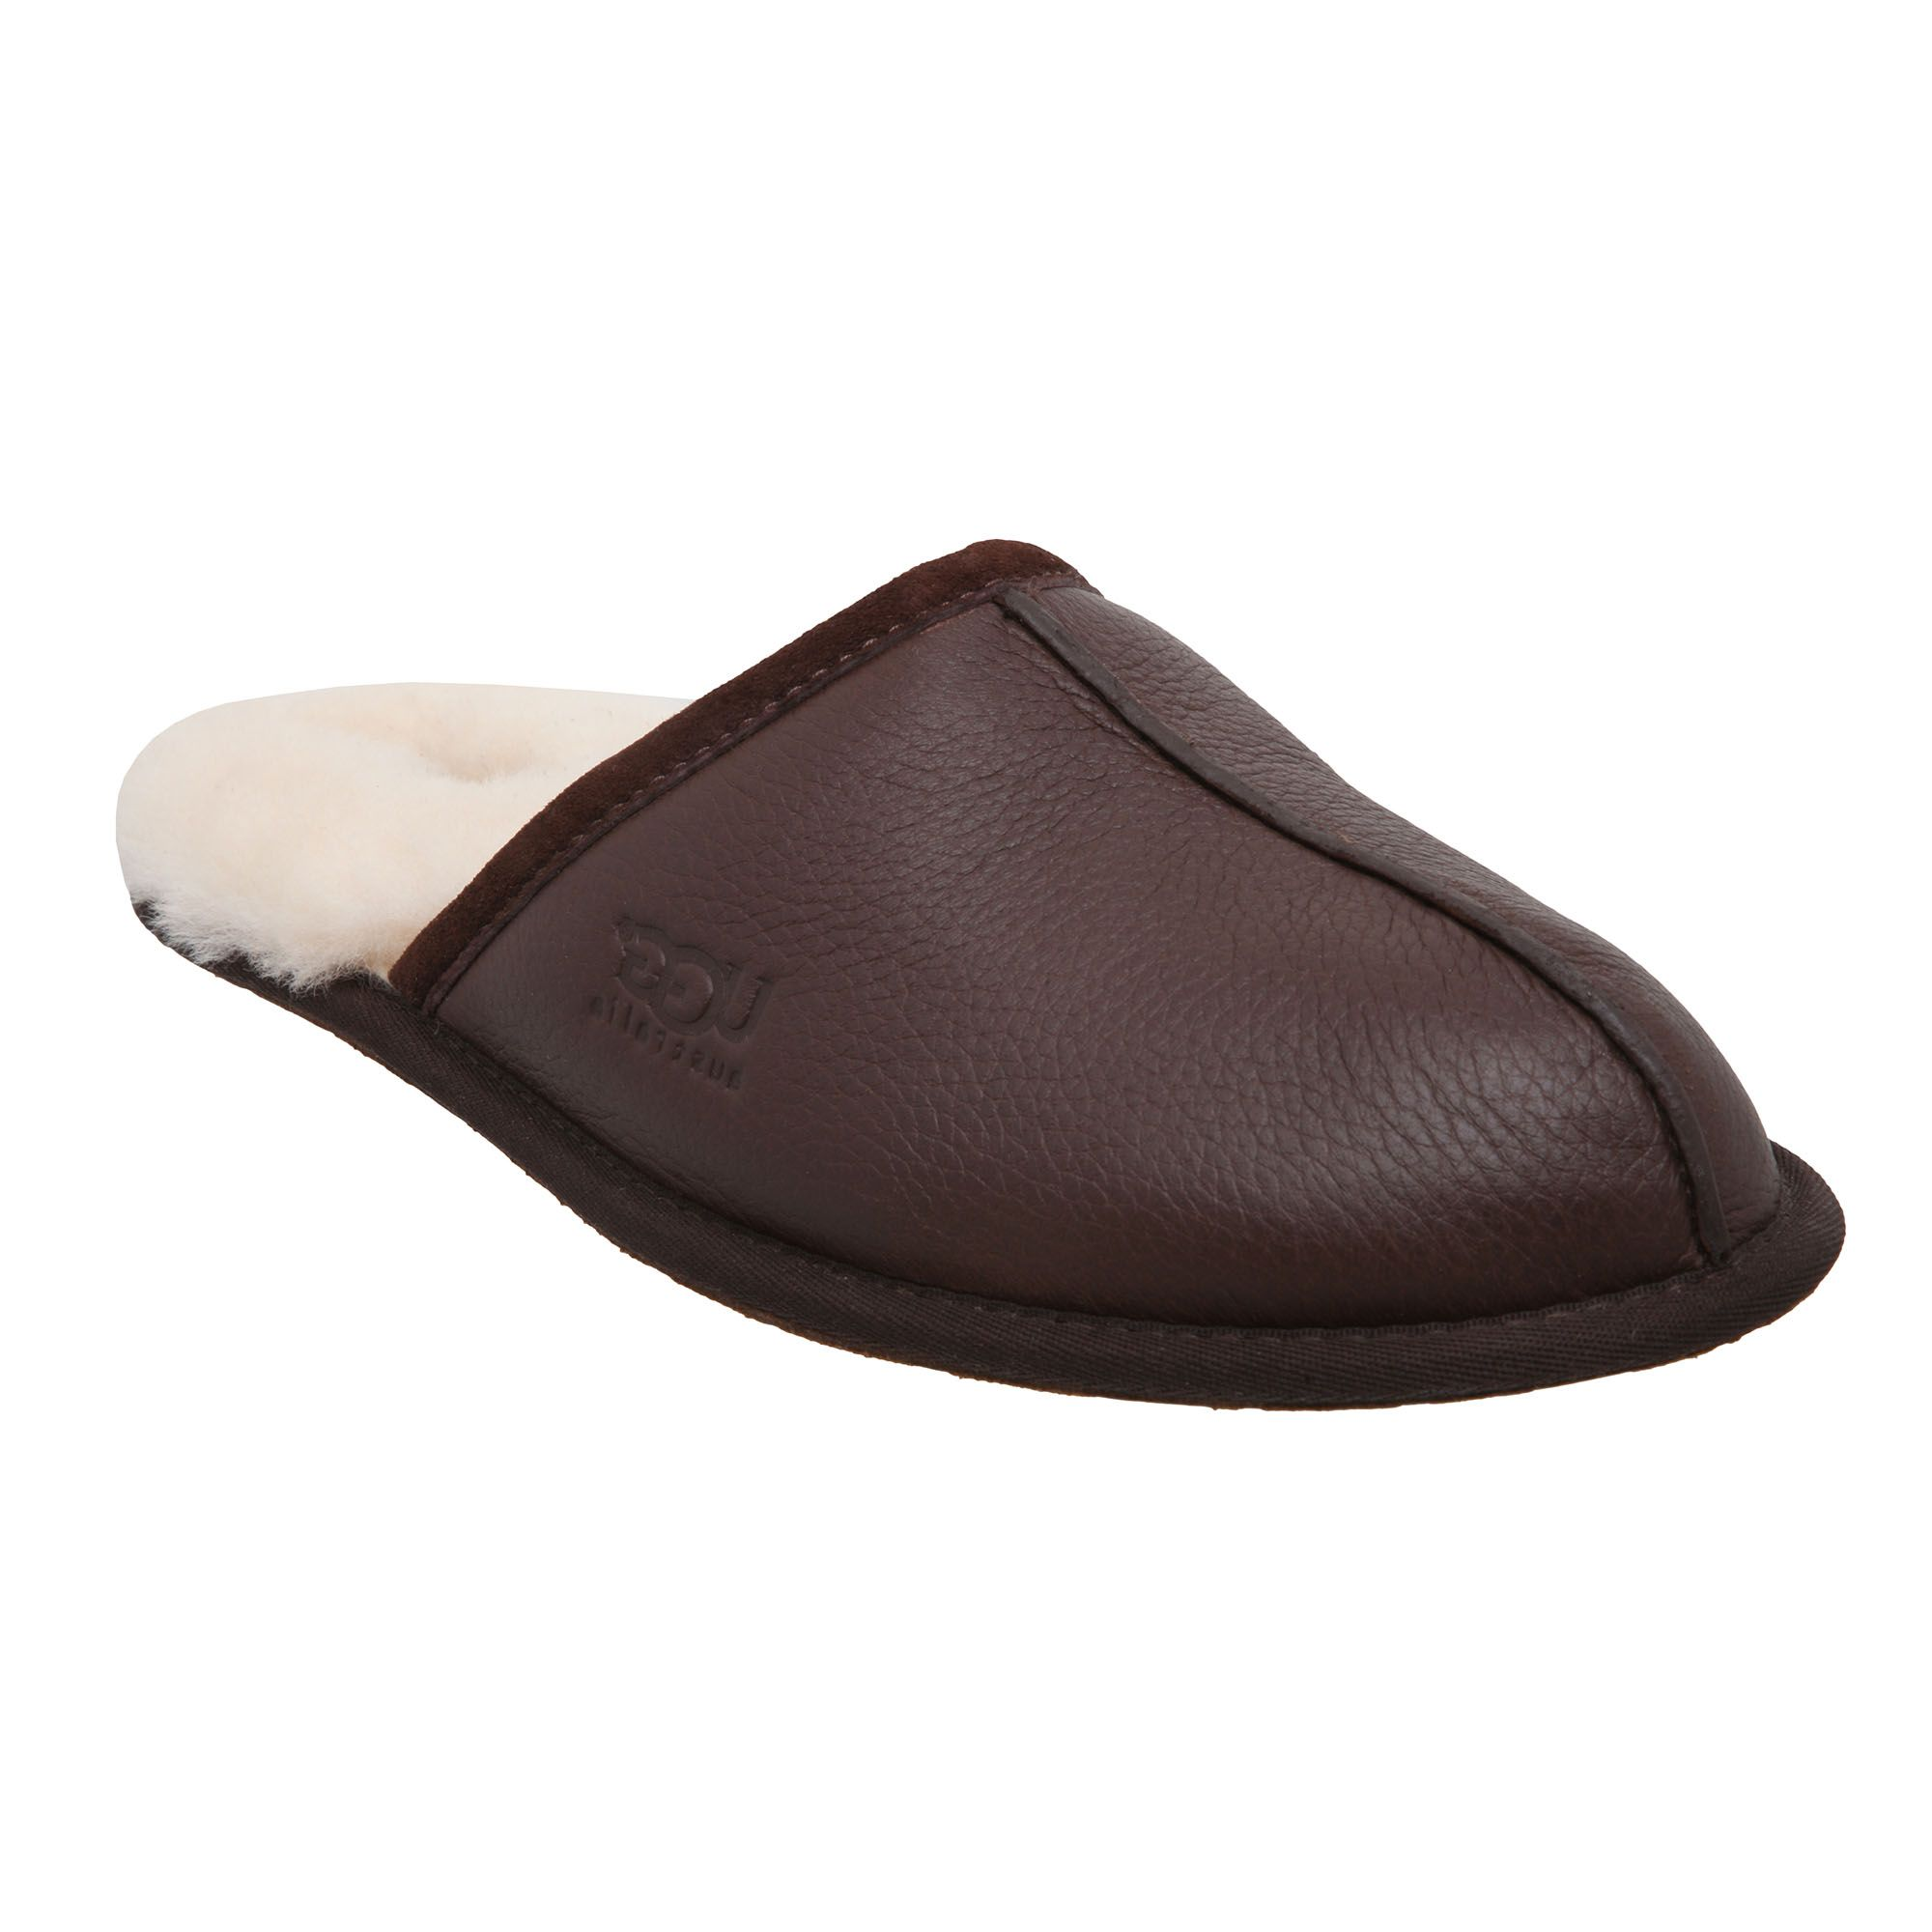 Mens Leather Bedroom Slippers Mens Slippers At House Of Fraser